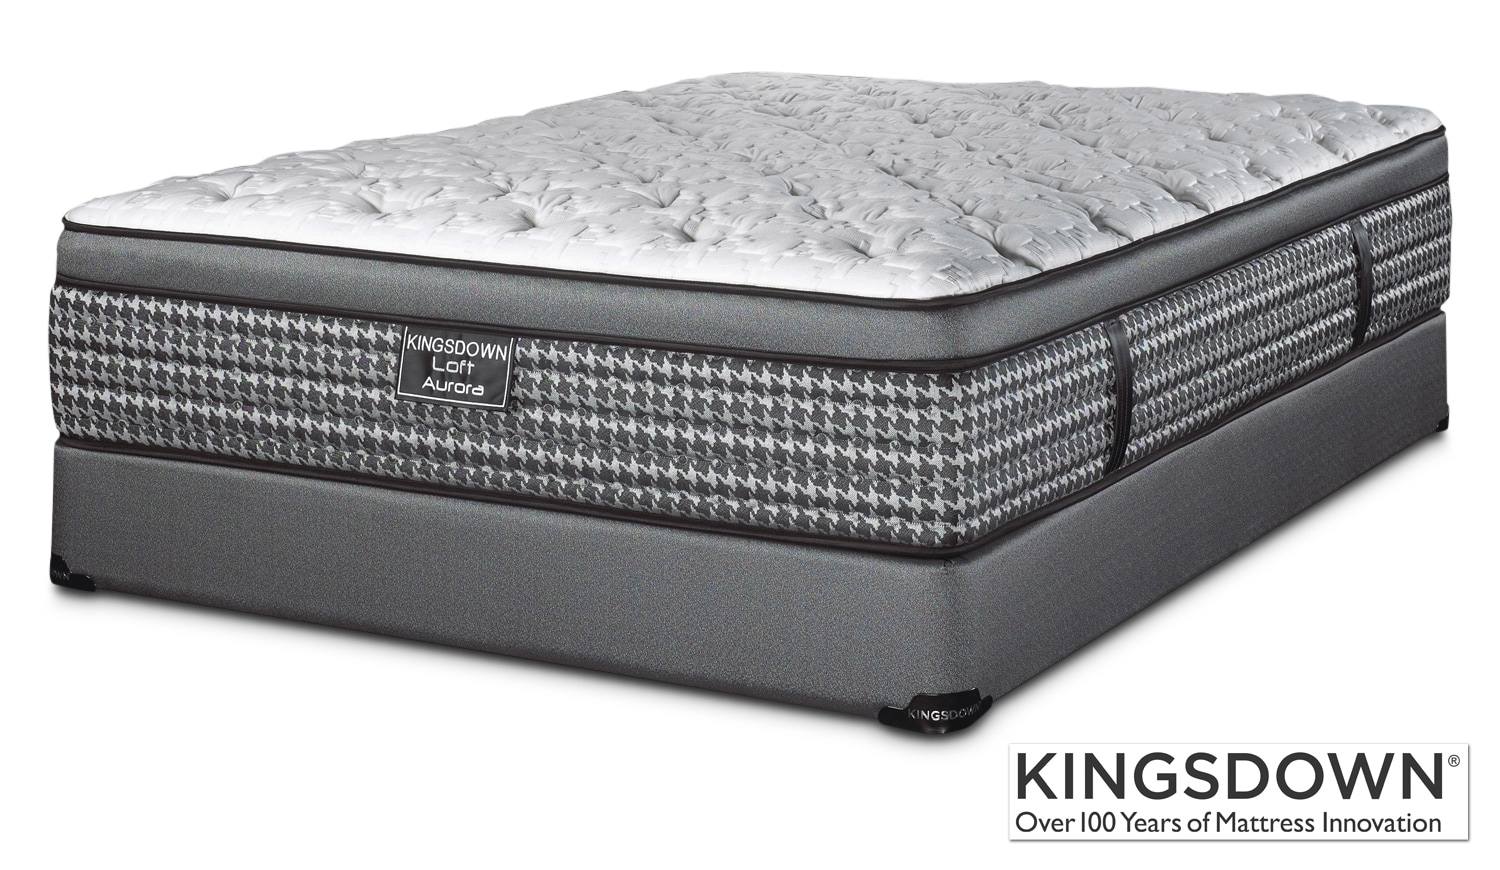 Kingsdown Aurora Full Mattress/Boxspring Set